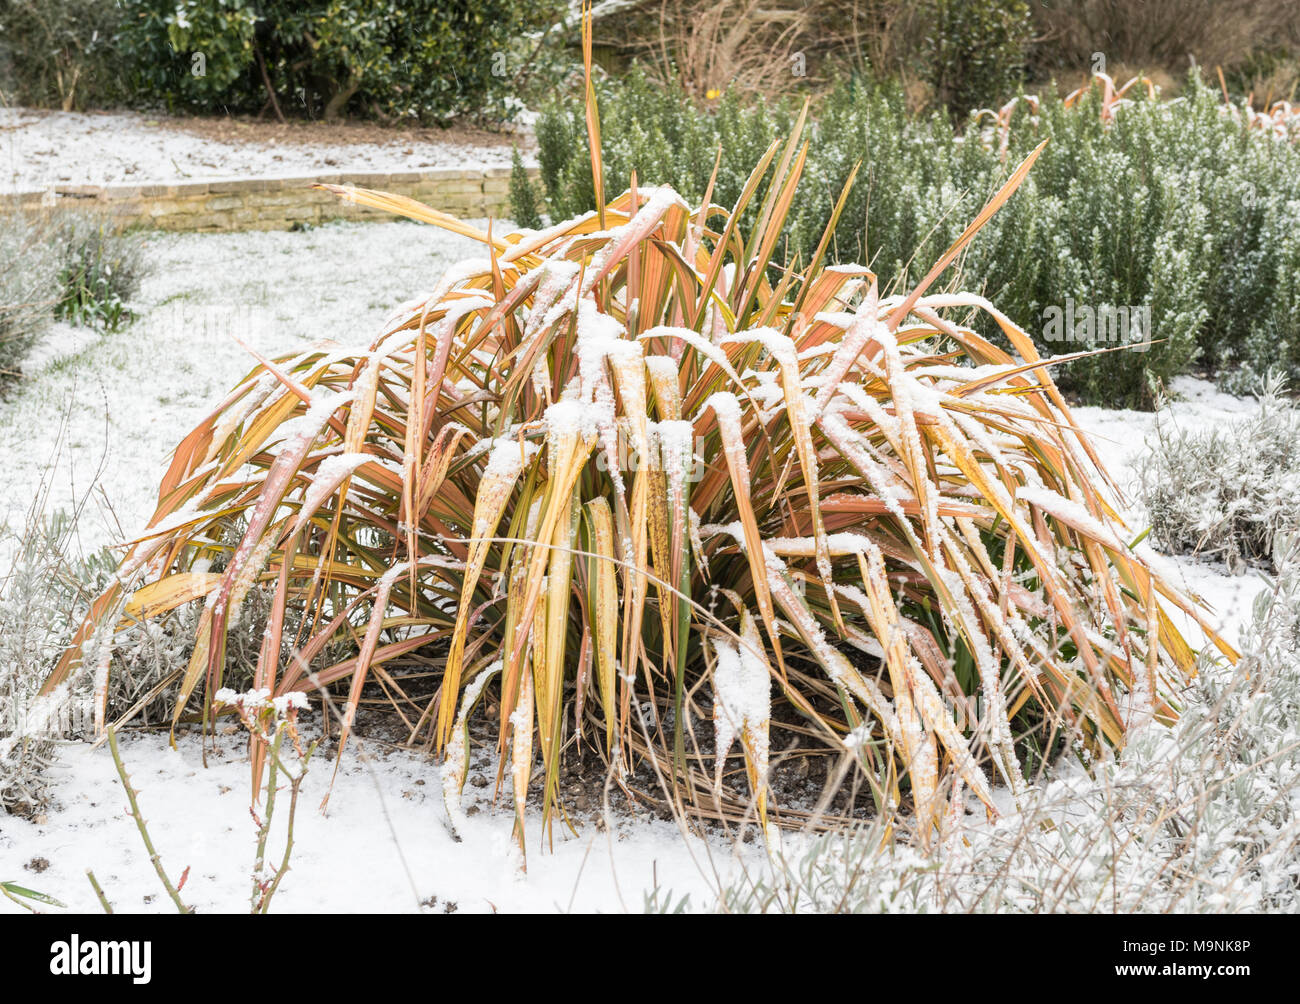 Phormiun hybrid 'Maori Maiden' (New Zealand Flax) evergreen perennial shrub growing in Winter covered in snow in West Sussex, England, UK. - Stock Image